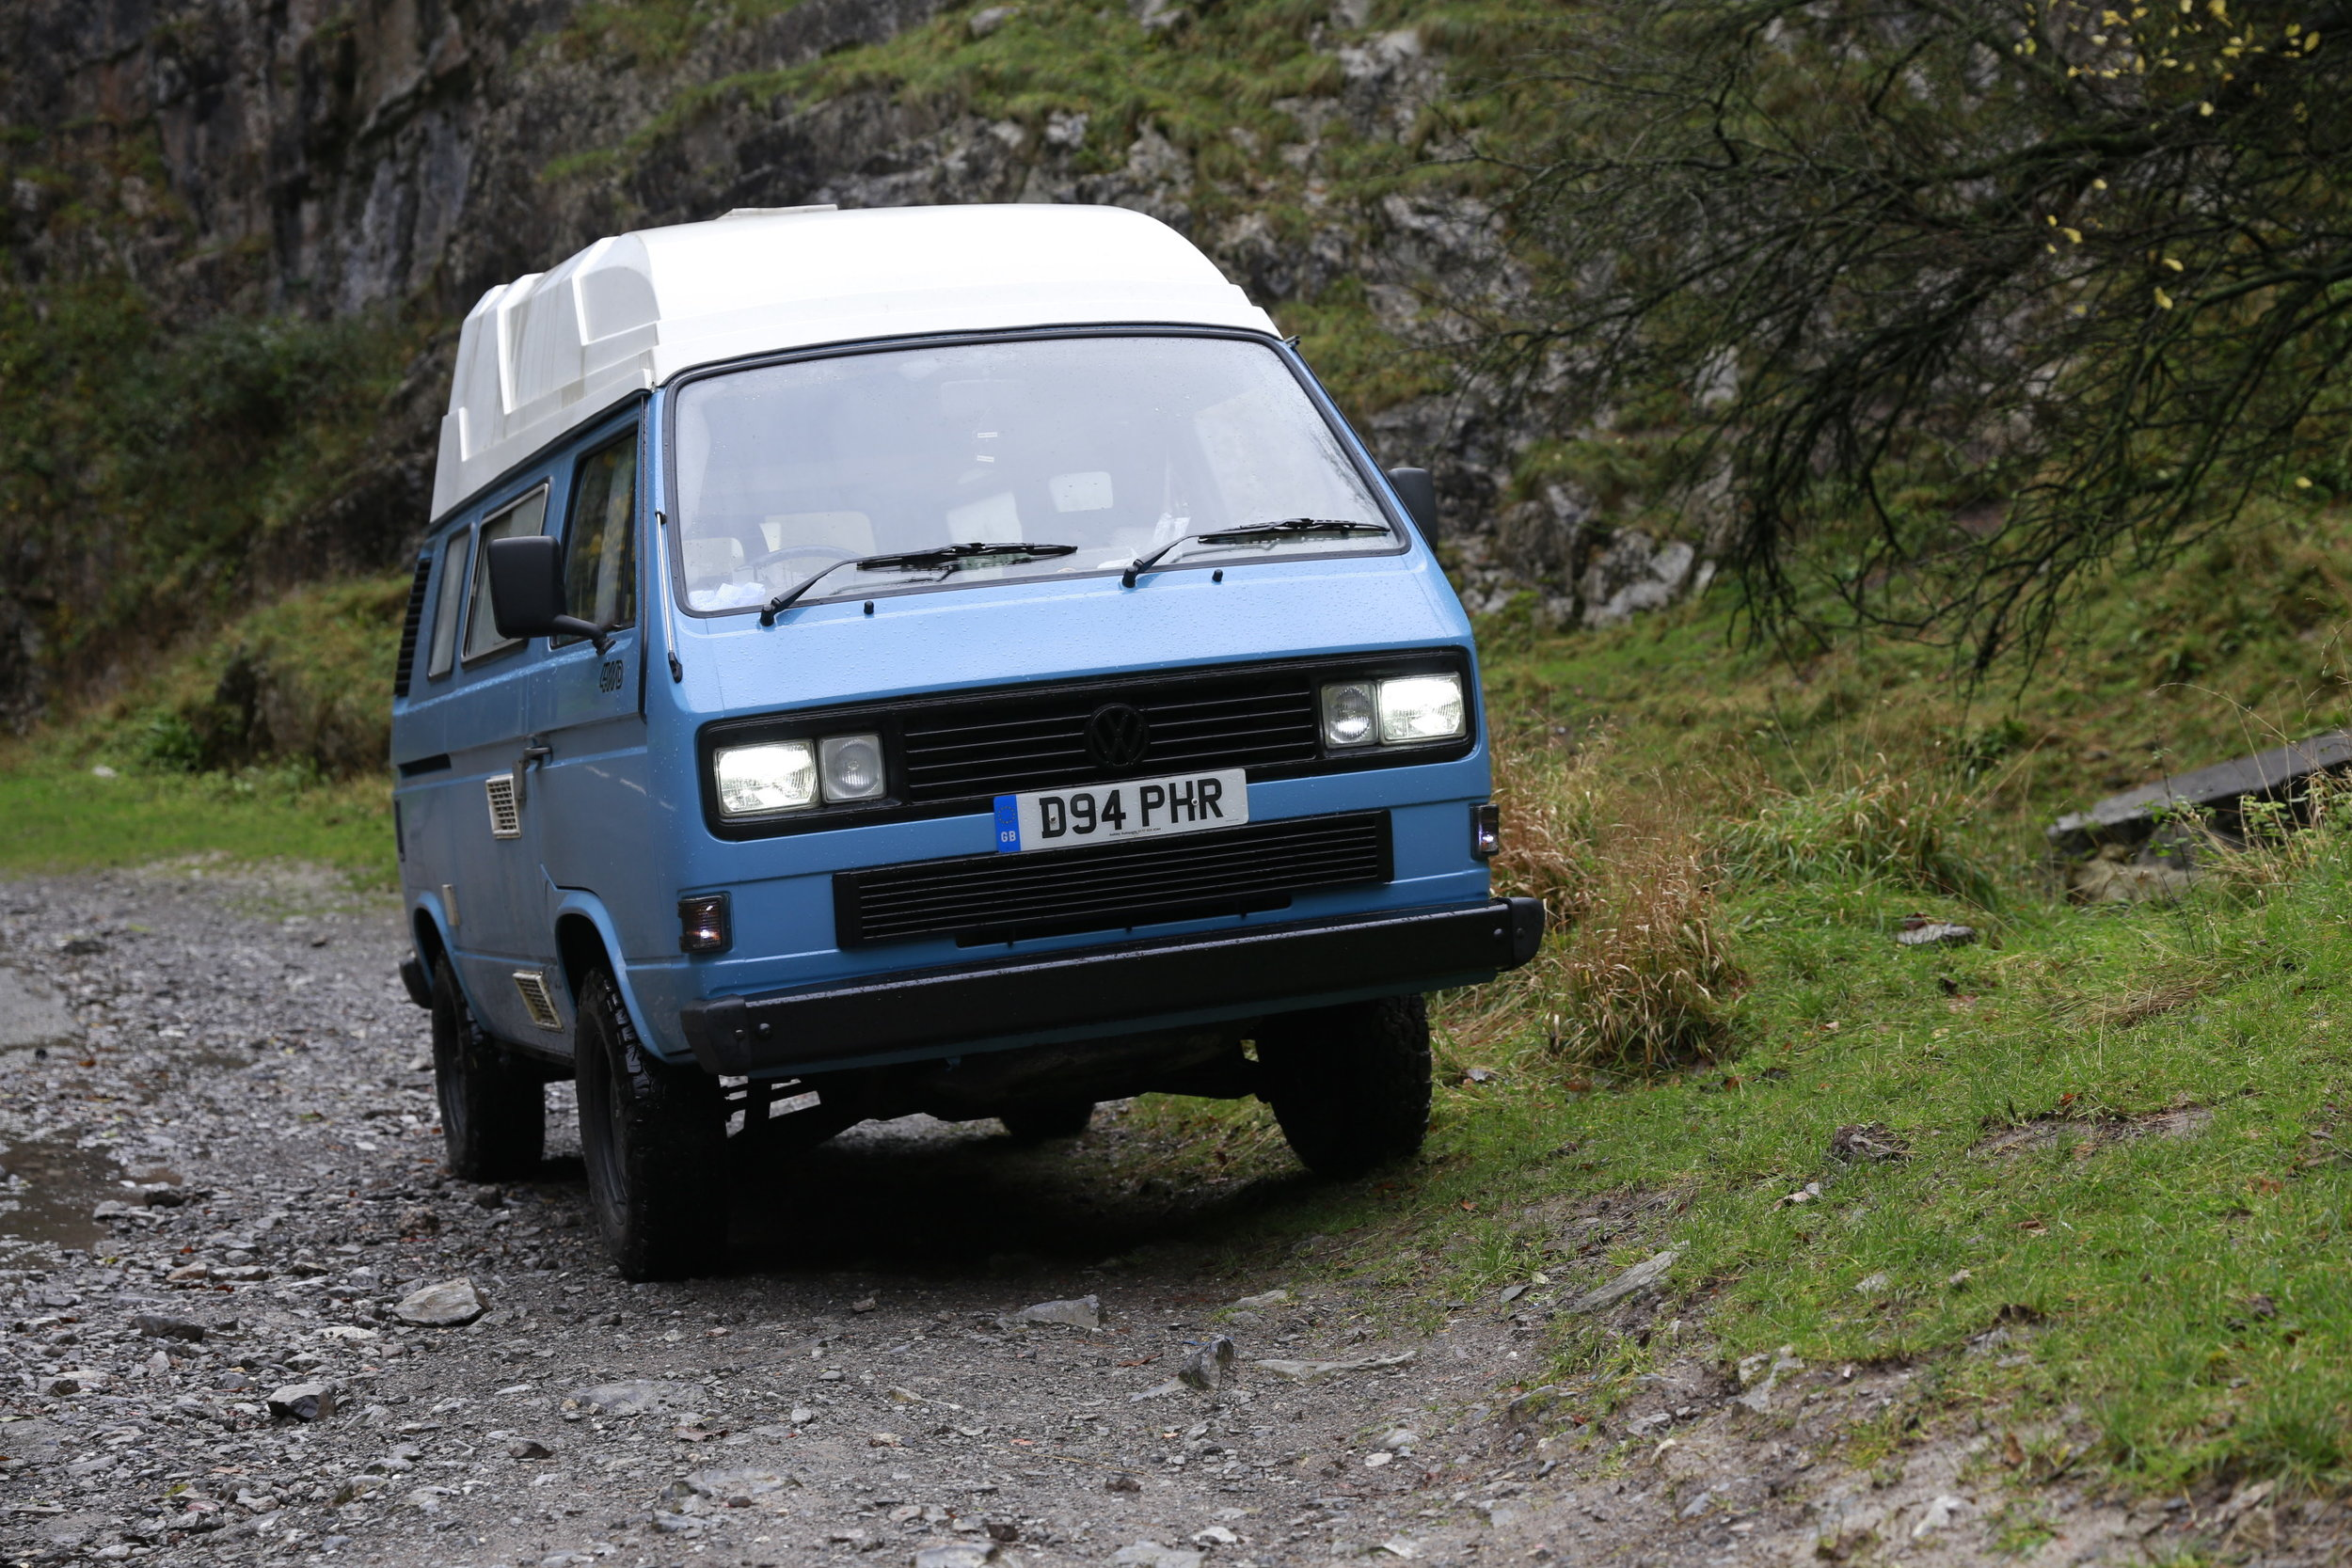 vw, vw t3, vw t3 syncro, syncro, vw syncro, vanagon, 4wd, t25, t3, van life, van life blog, jack macgowan, bicycle touring apocalypse, travel blog, volkswagen campervan, bfg all terrain, scotland, isle of skye, bikepacking, bicycle touring, cycle touring